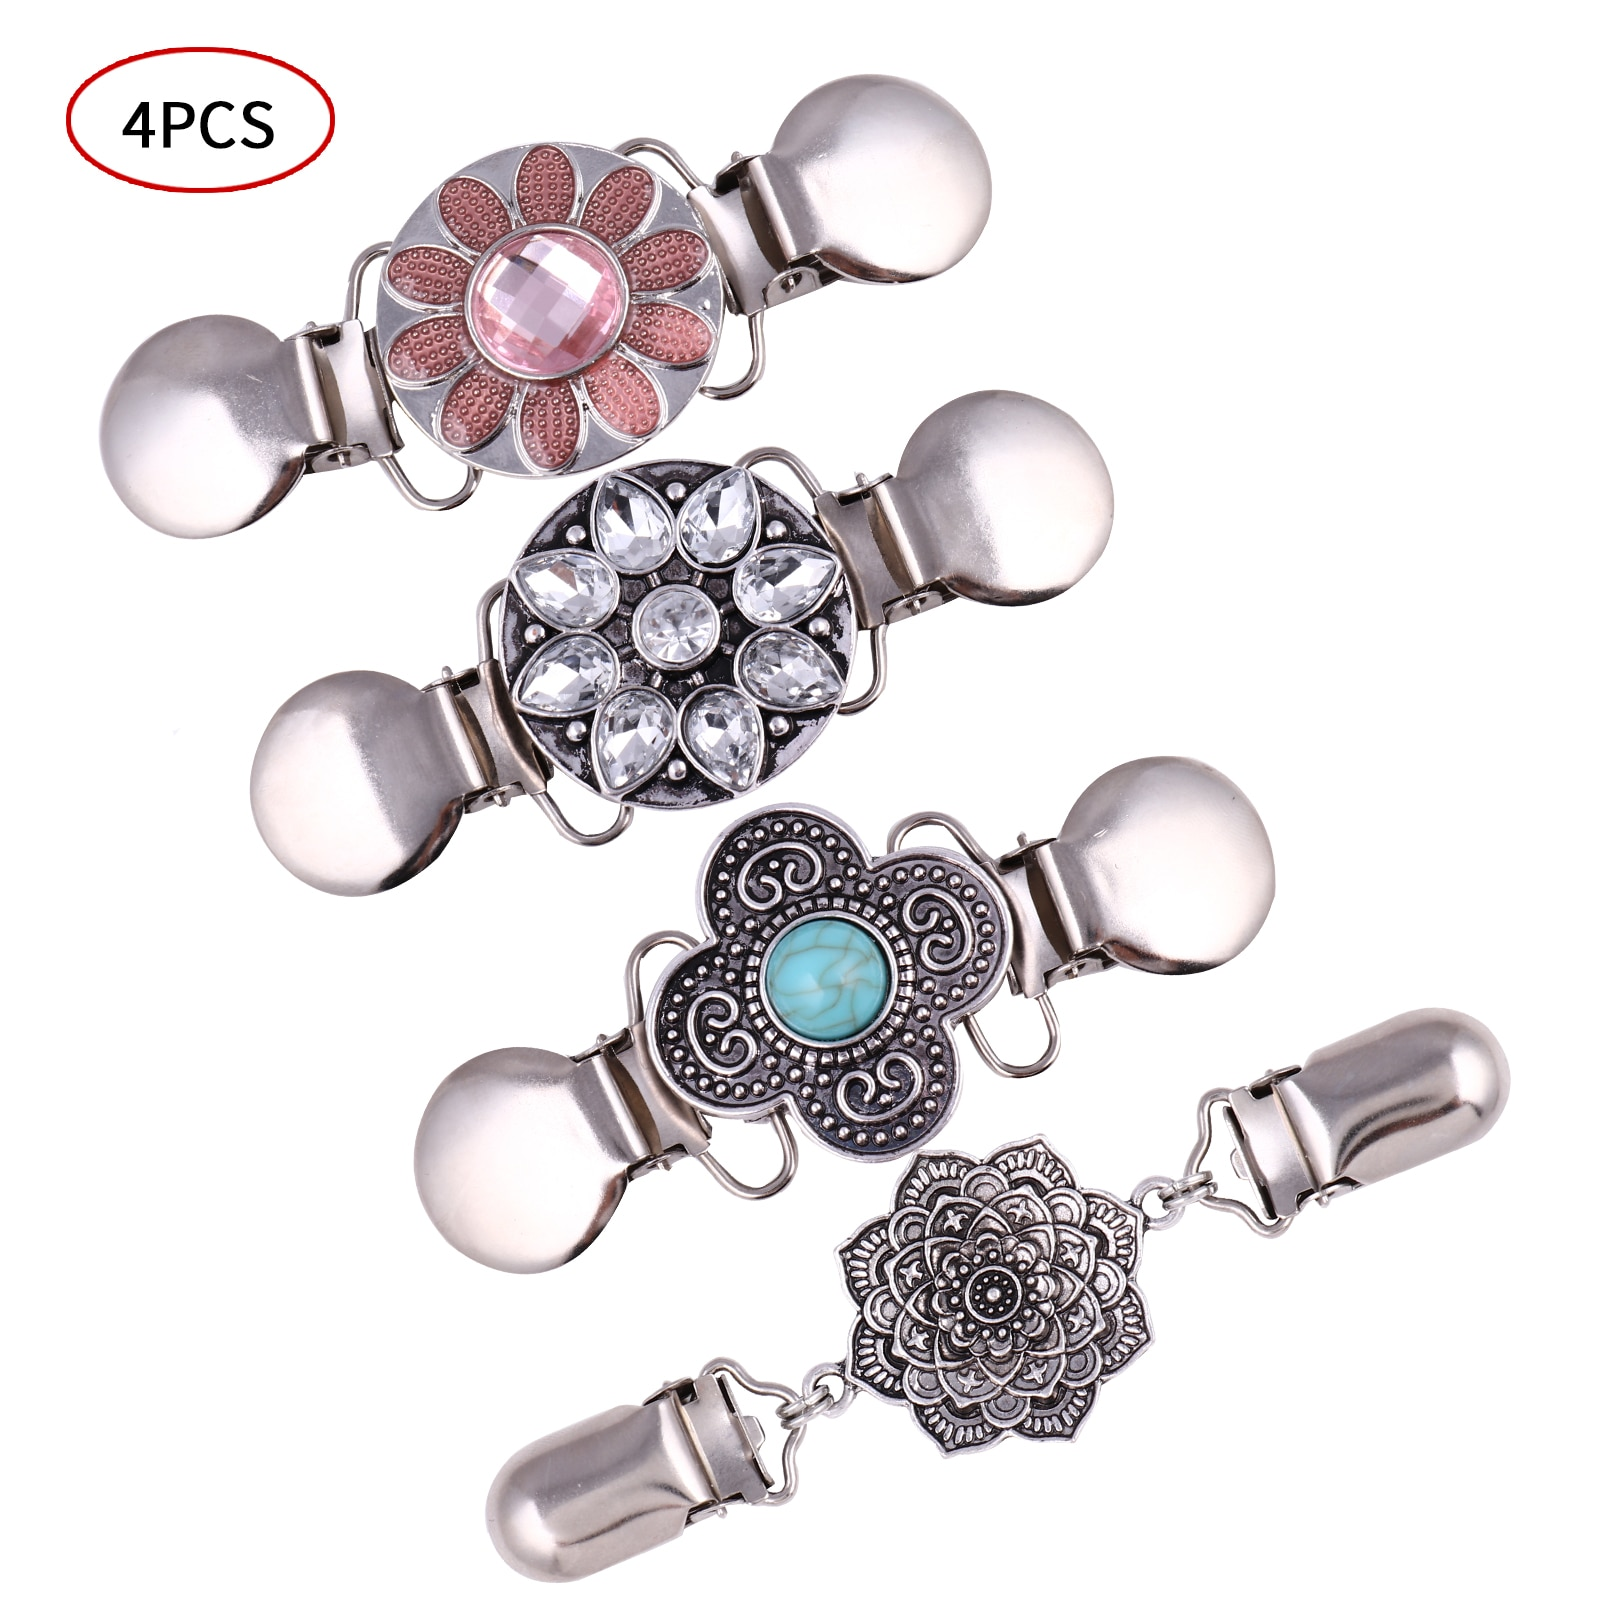 4Pcs Cardigan Shirt Clips Clasps Women Vest Sweater Shawl Duck Clips Retro Flower Shaped Buckle Pins DIY Clothing Brooch Clasp